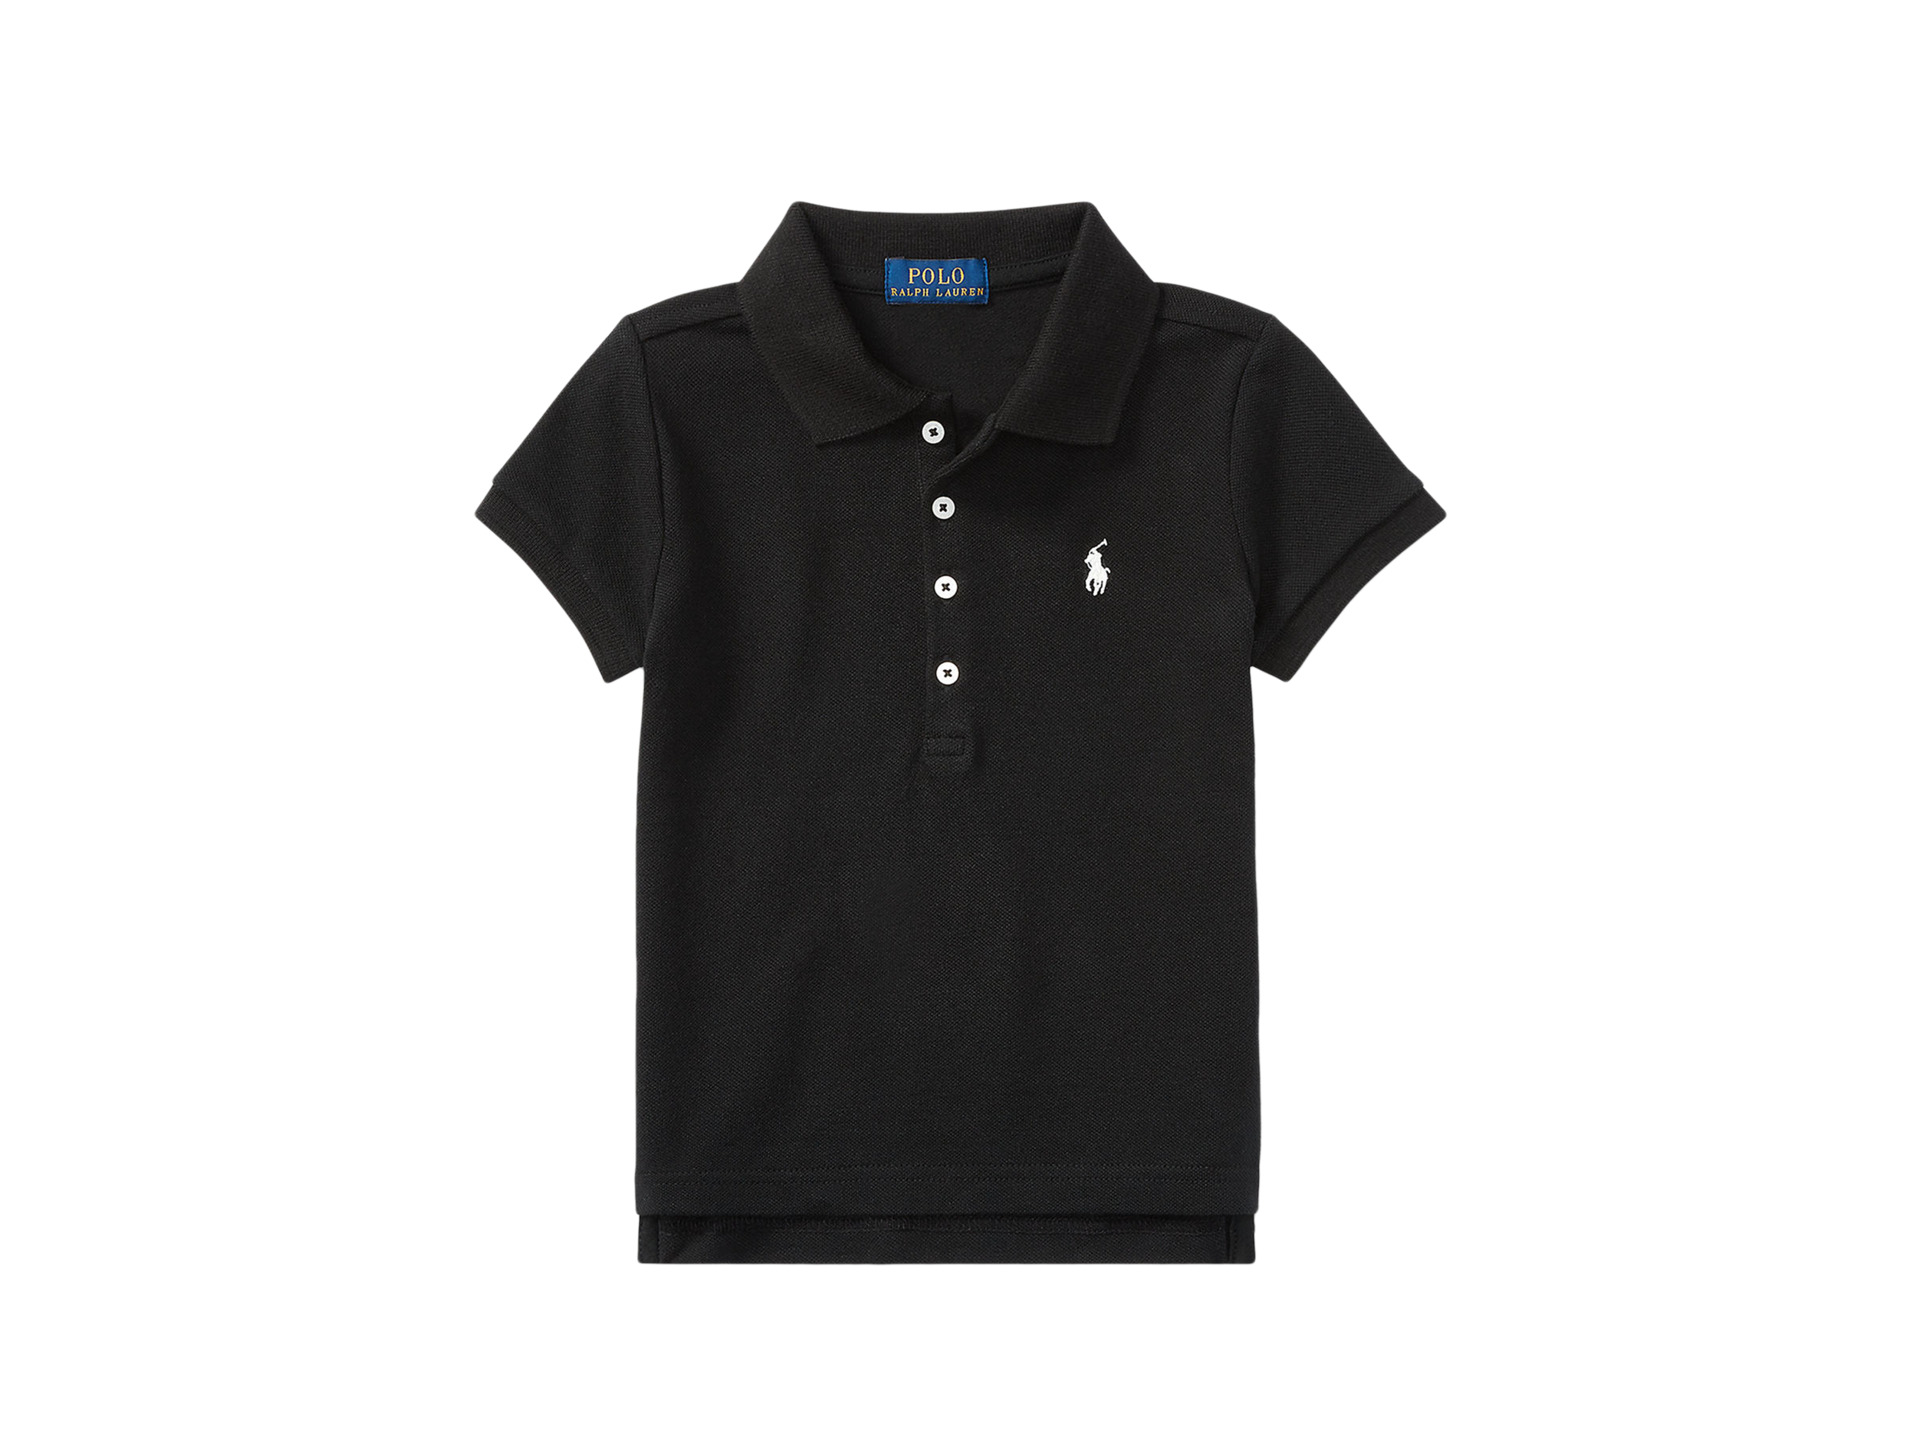 Polo ralph lauren kids short sleeve mesh polo shirt for Ralph lauren kids